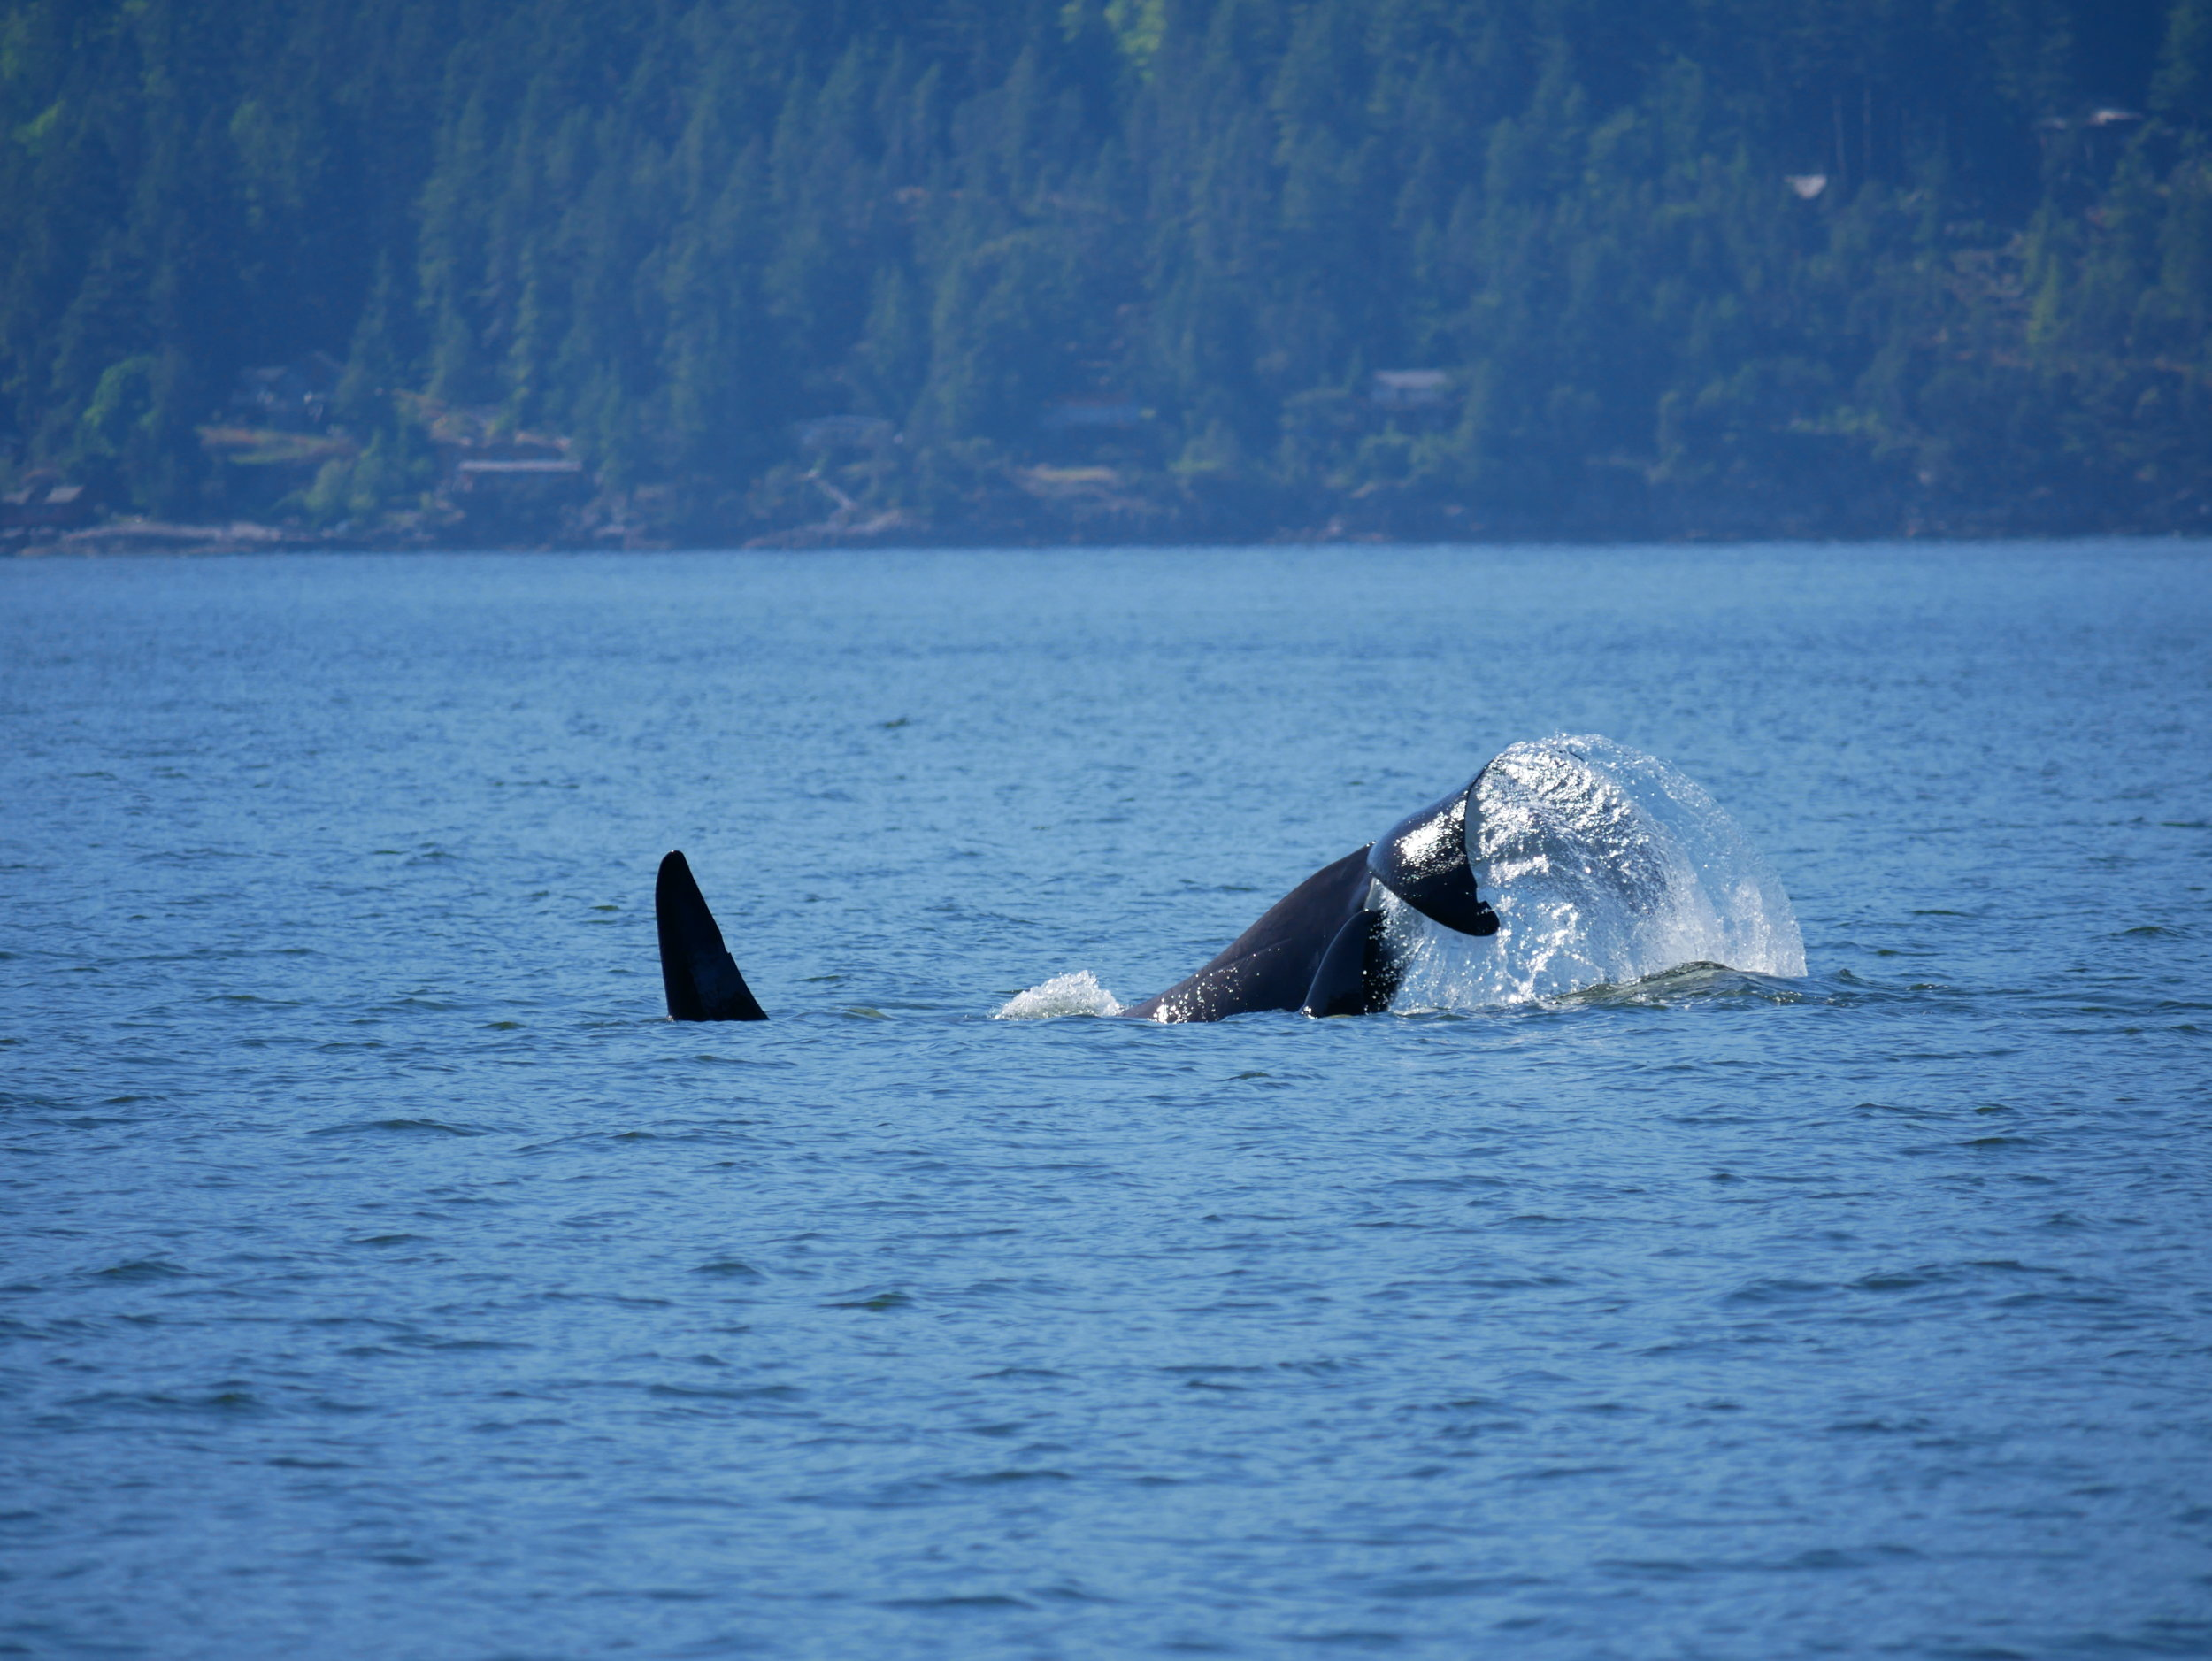 """A male orca known as T123A or """"Stanley"""" raises his gigantic fluke out of the water for a few tail slaps at the surface. Photo by Mike Campbell"""